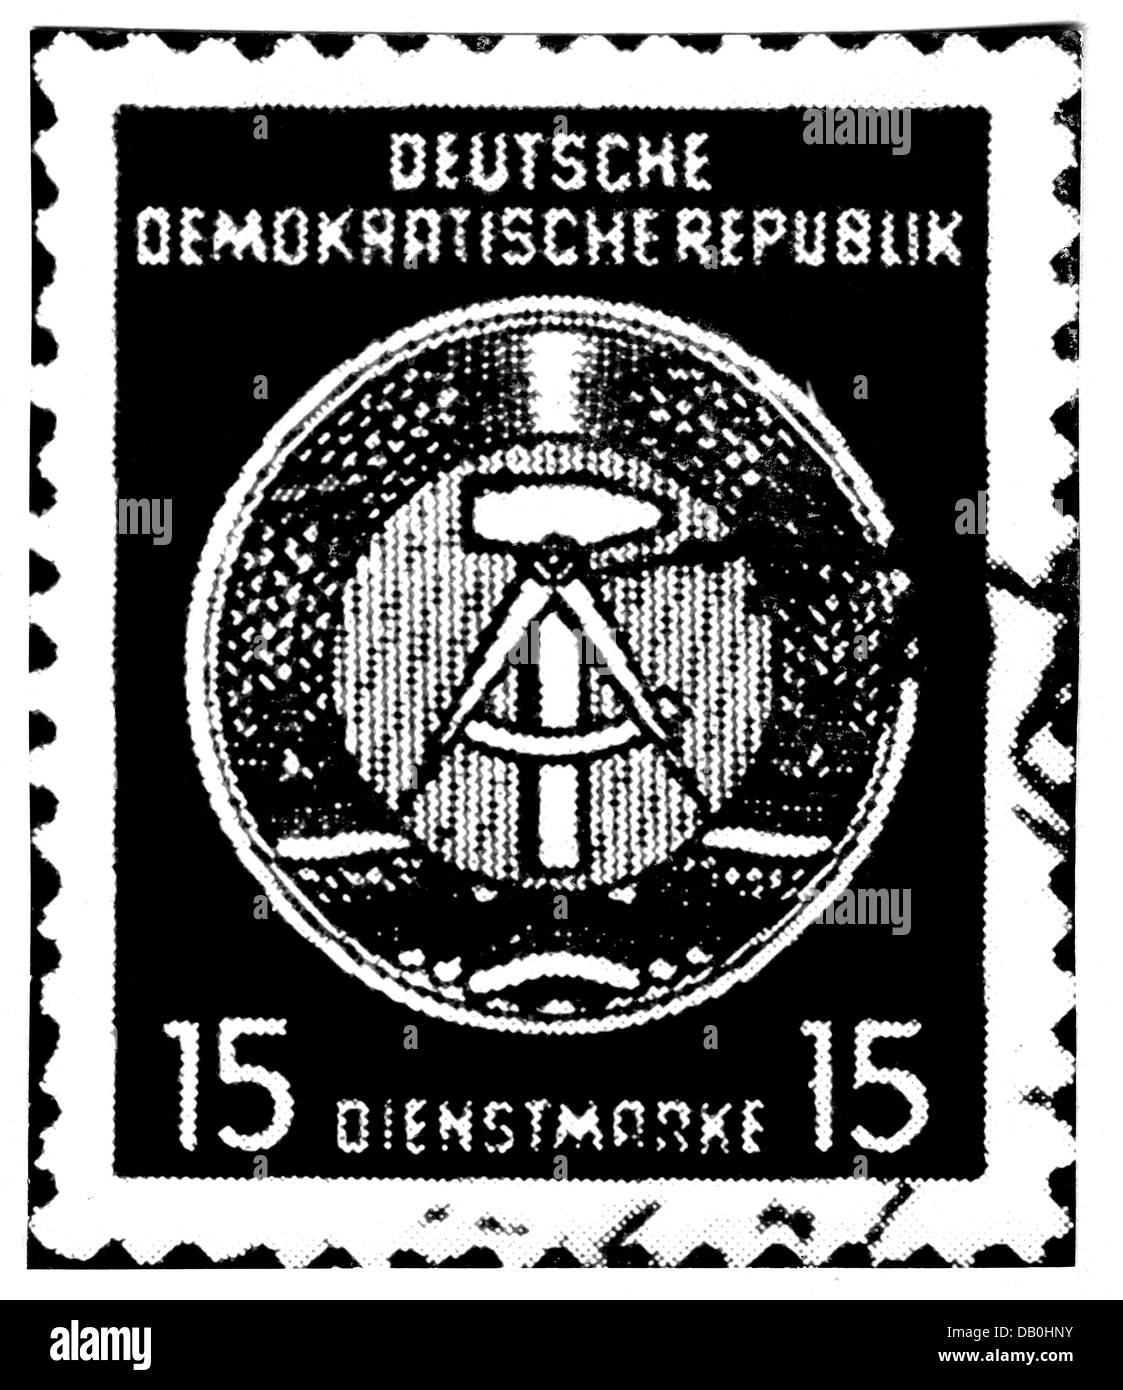 Mail Postage Stamps Germany German Democratic Republic 15 Pfennig Official Stamp